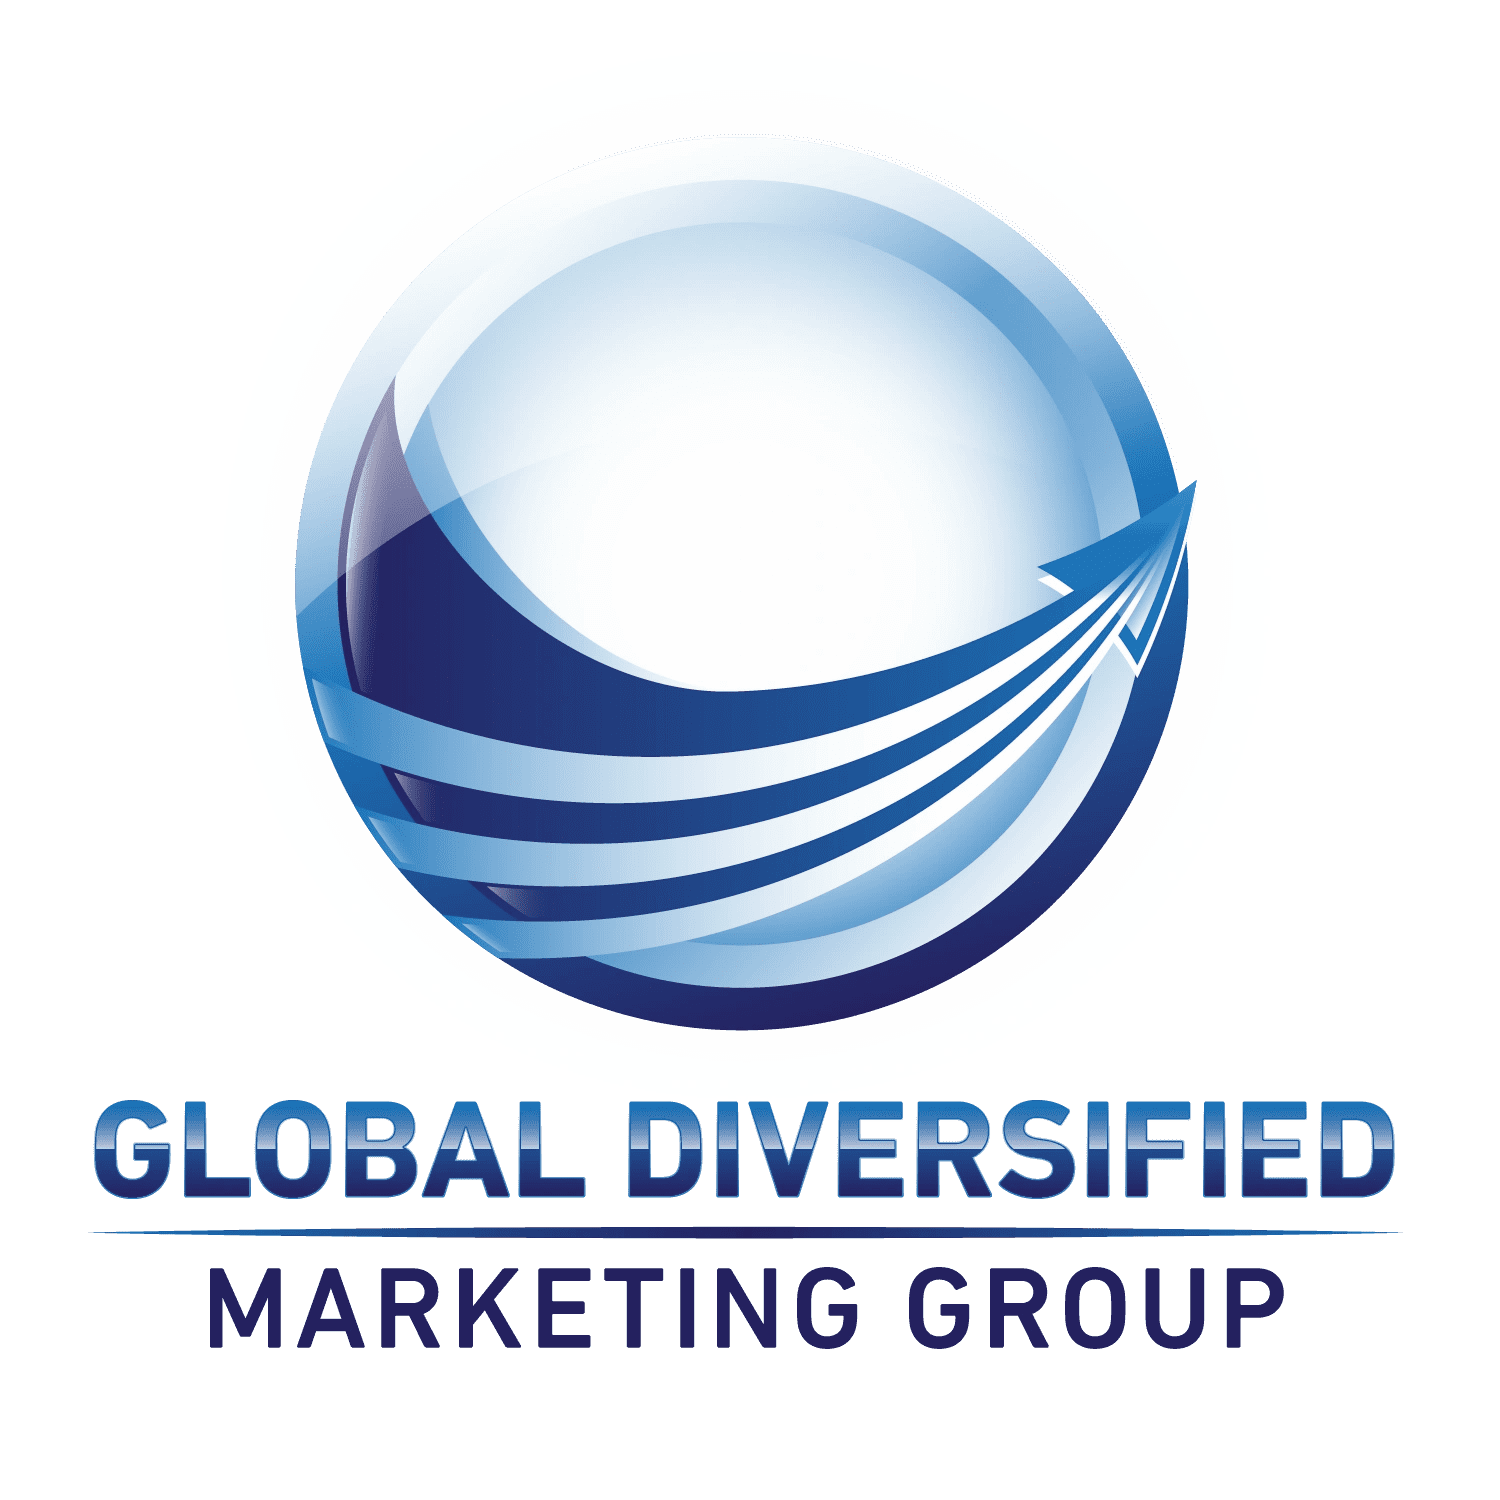 Global‌ ‌Diversified‌ ‌Marketing‌ ‌Group‌ ‌(OTC‌ ‌Markets:‌ ‌GDMK)‌ ‌Supplies‌ ‌Premium‌ ‌Quality‌ ‌Food‌ ‌and‌ ‌Snacks‌ ‌to‌ ‌the‌ ‌USA,‌ ‌Canada‌ ‌and‌ ‌Europe